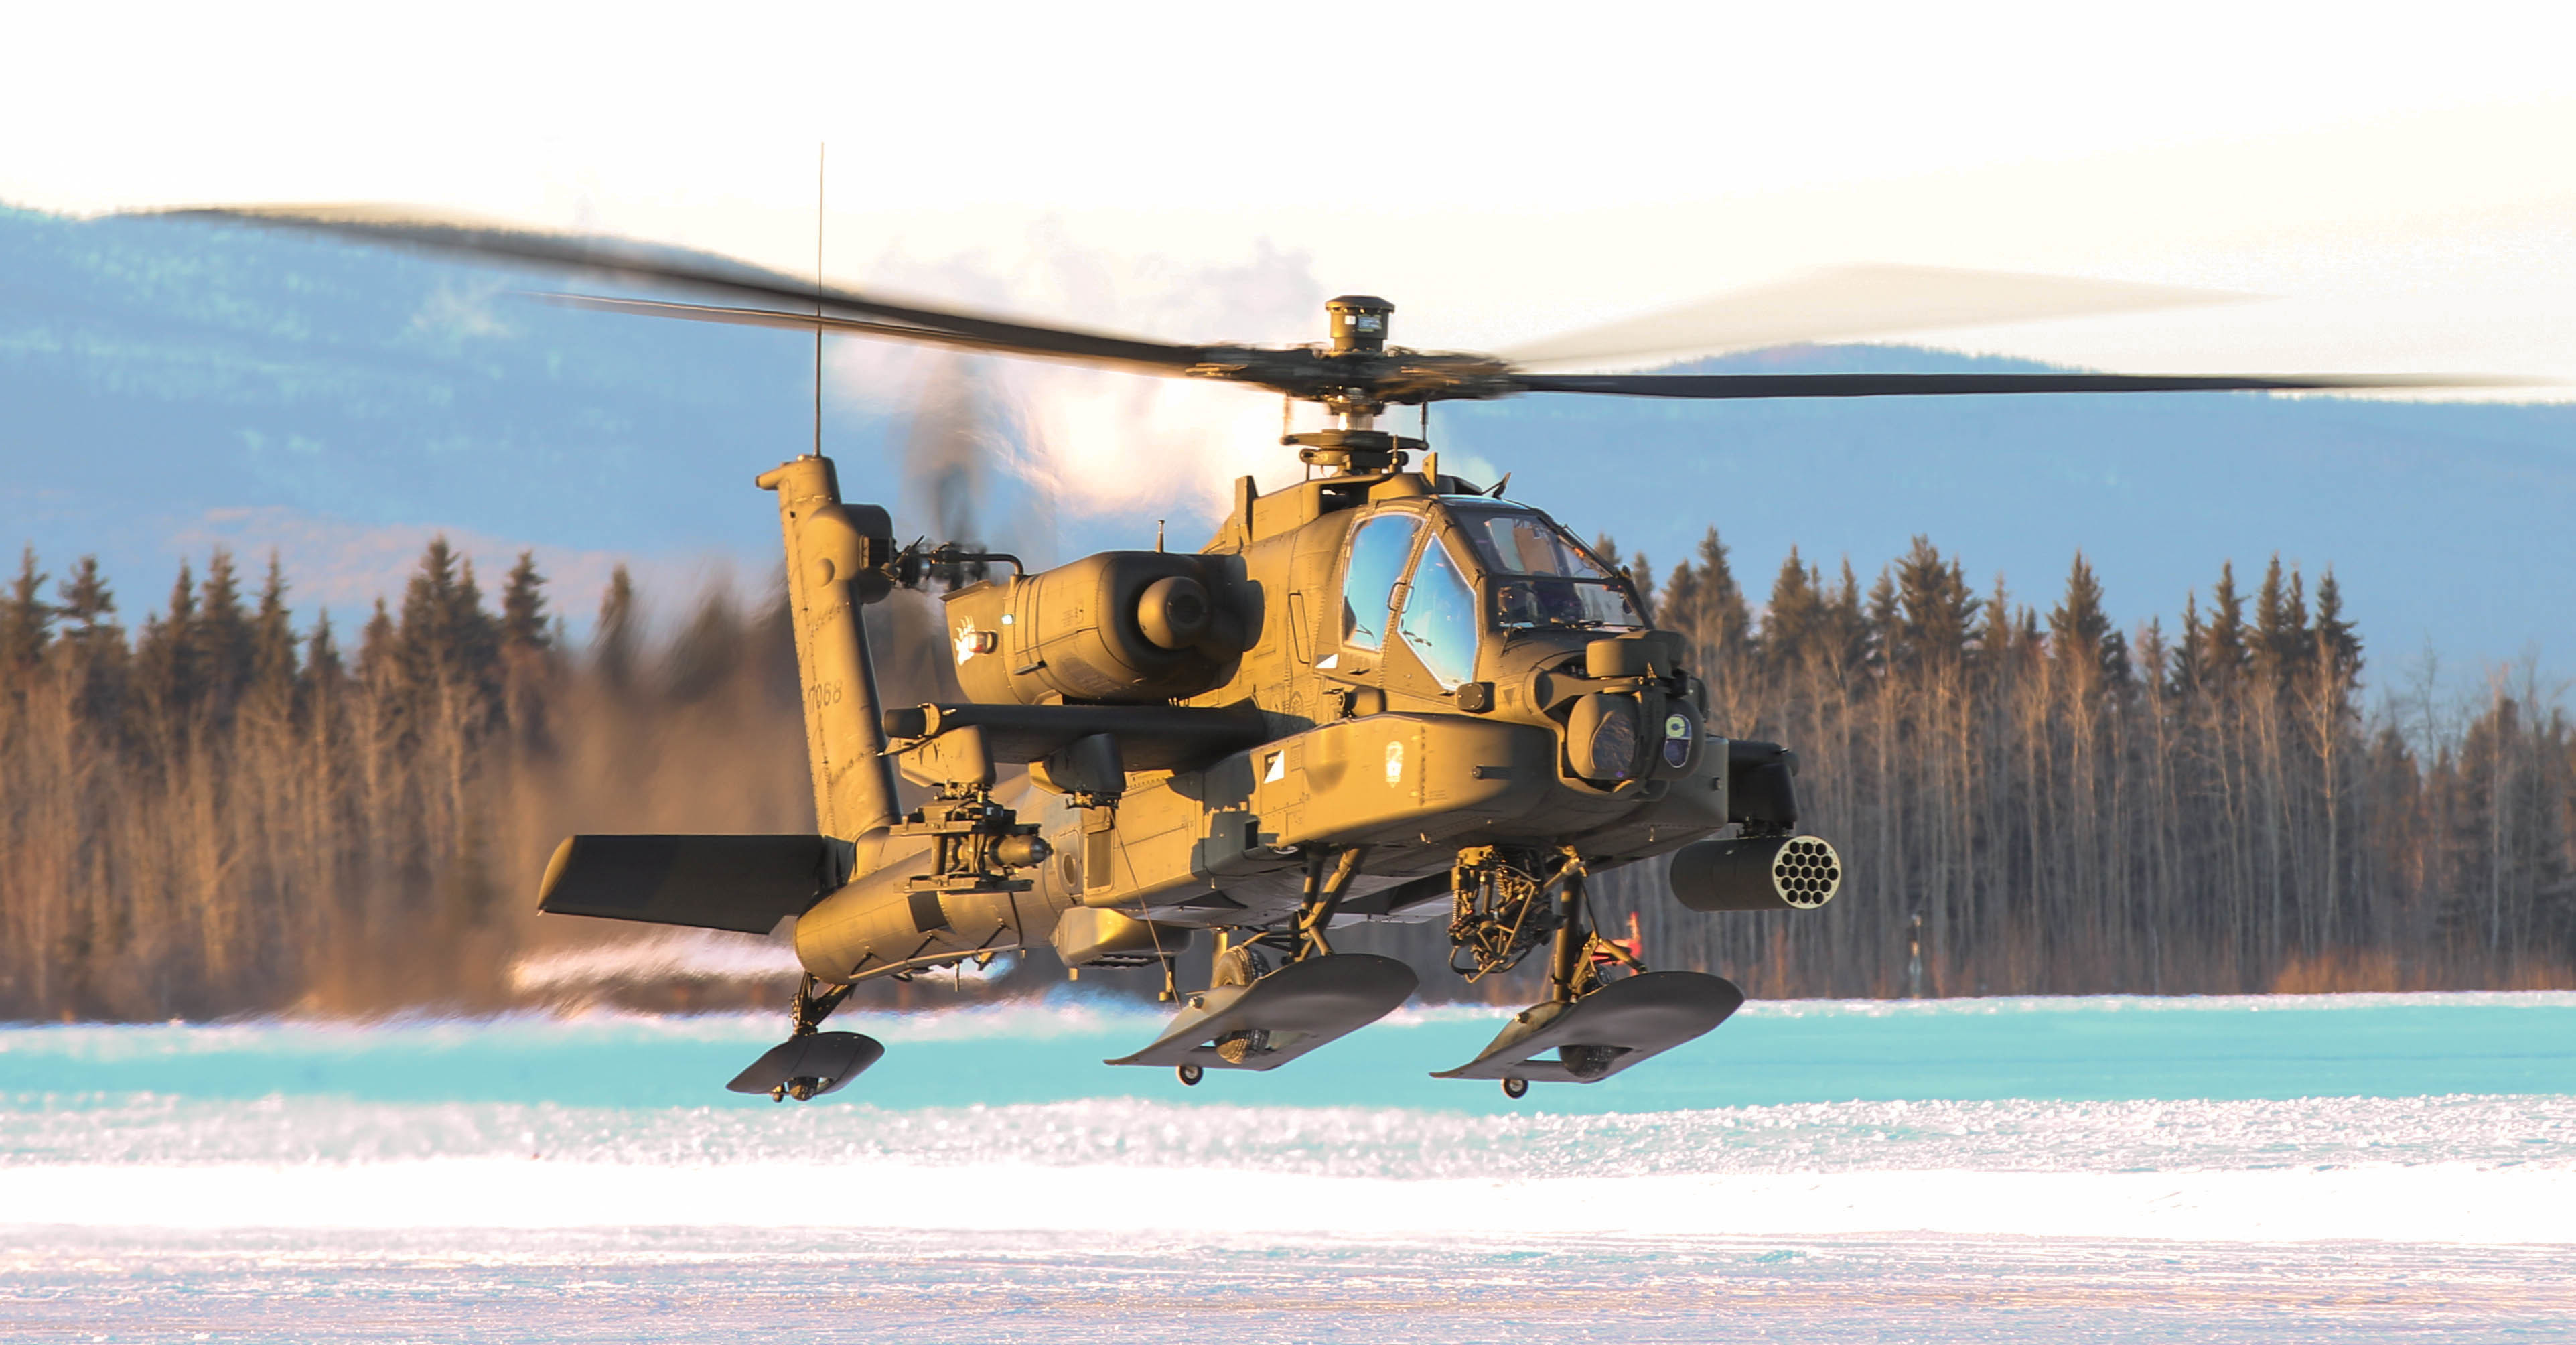 Army Apaches with skis: Attack helos get cold weather upgrades